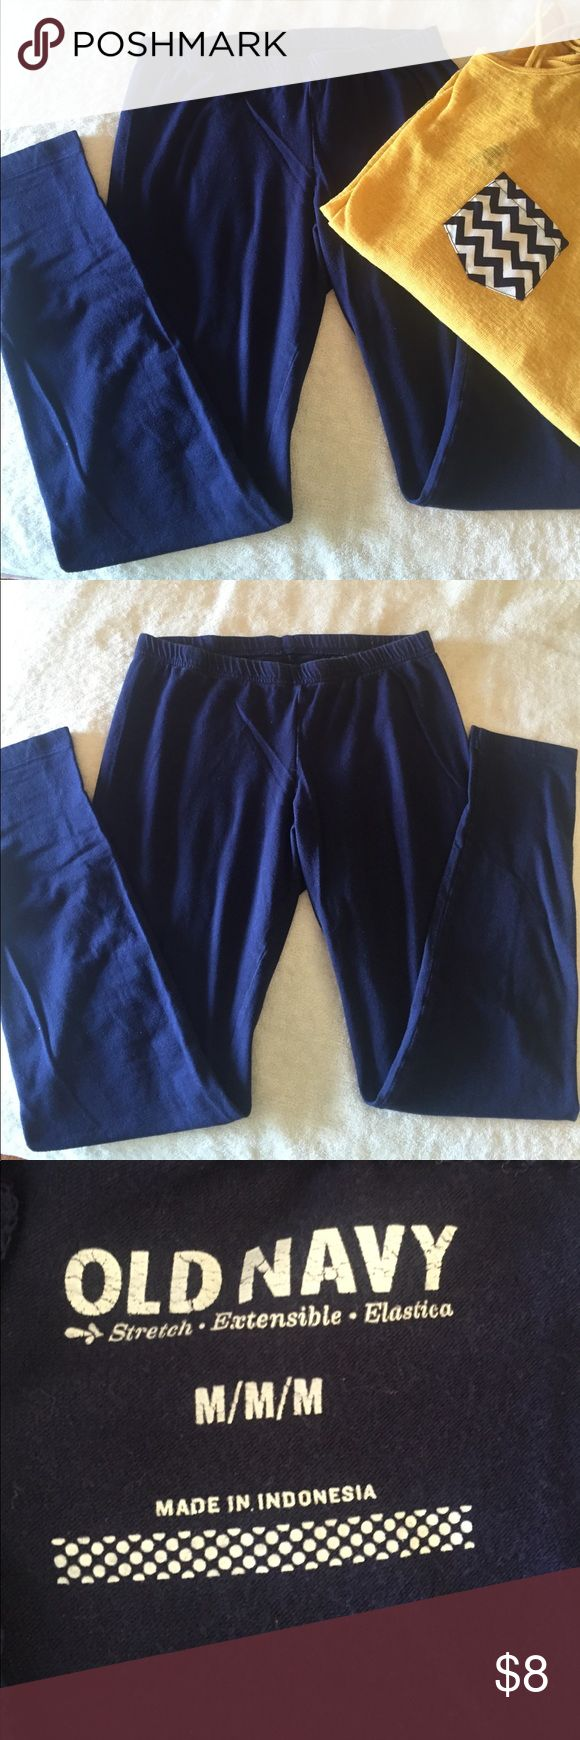 Old Navy Blue leggings Blue leggings. Old Navy. Size medium. 96% cotton and 4% spandex. Mustard yellow shirt with chevron pocket also available. Smoke free home. Old Navy Pants Leggings